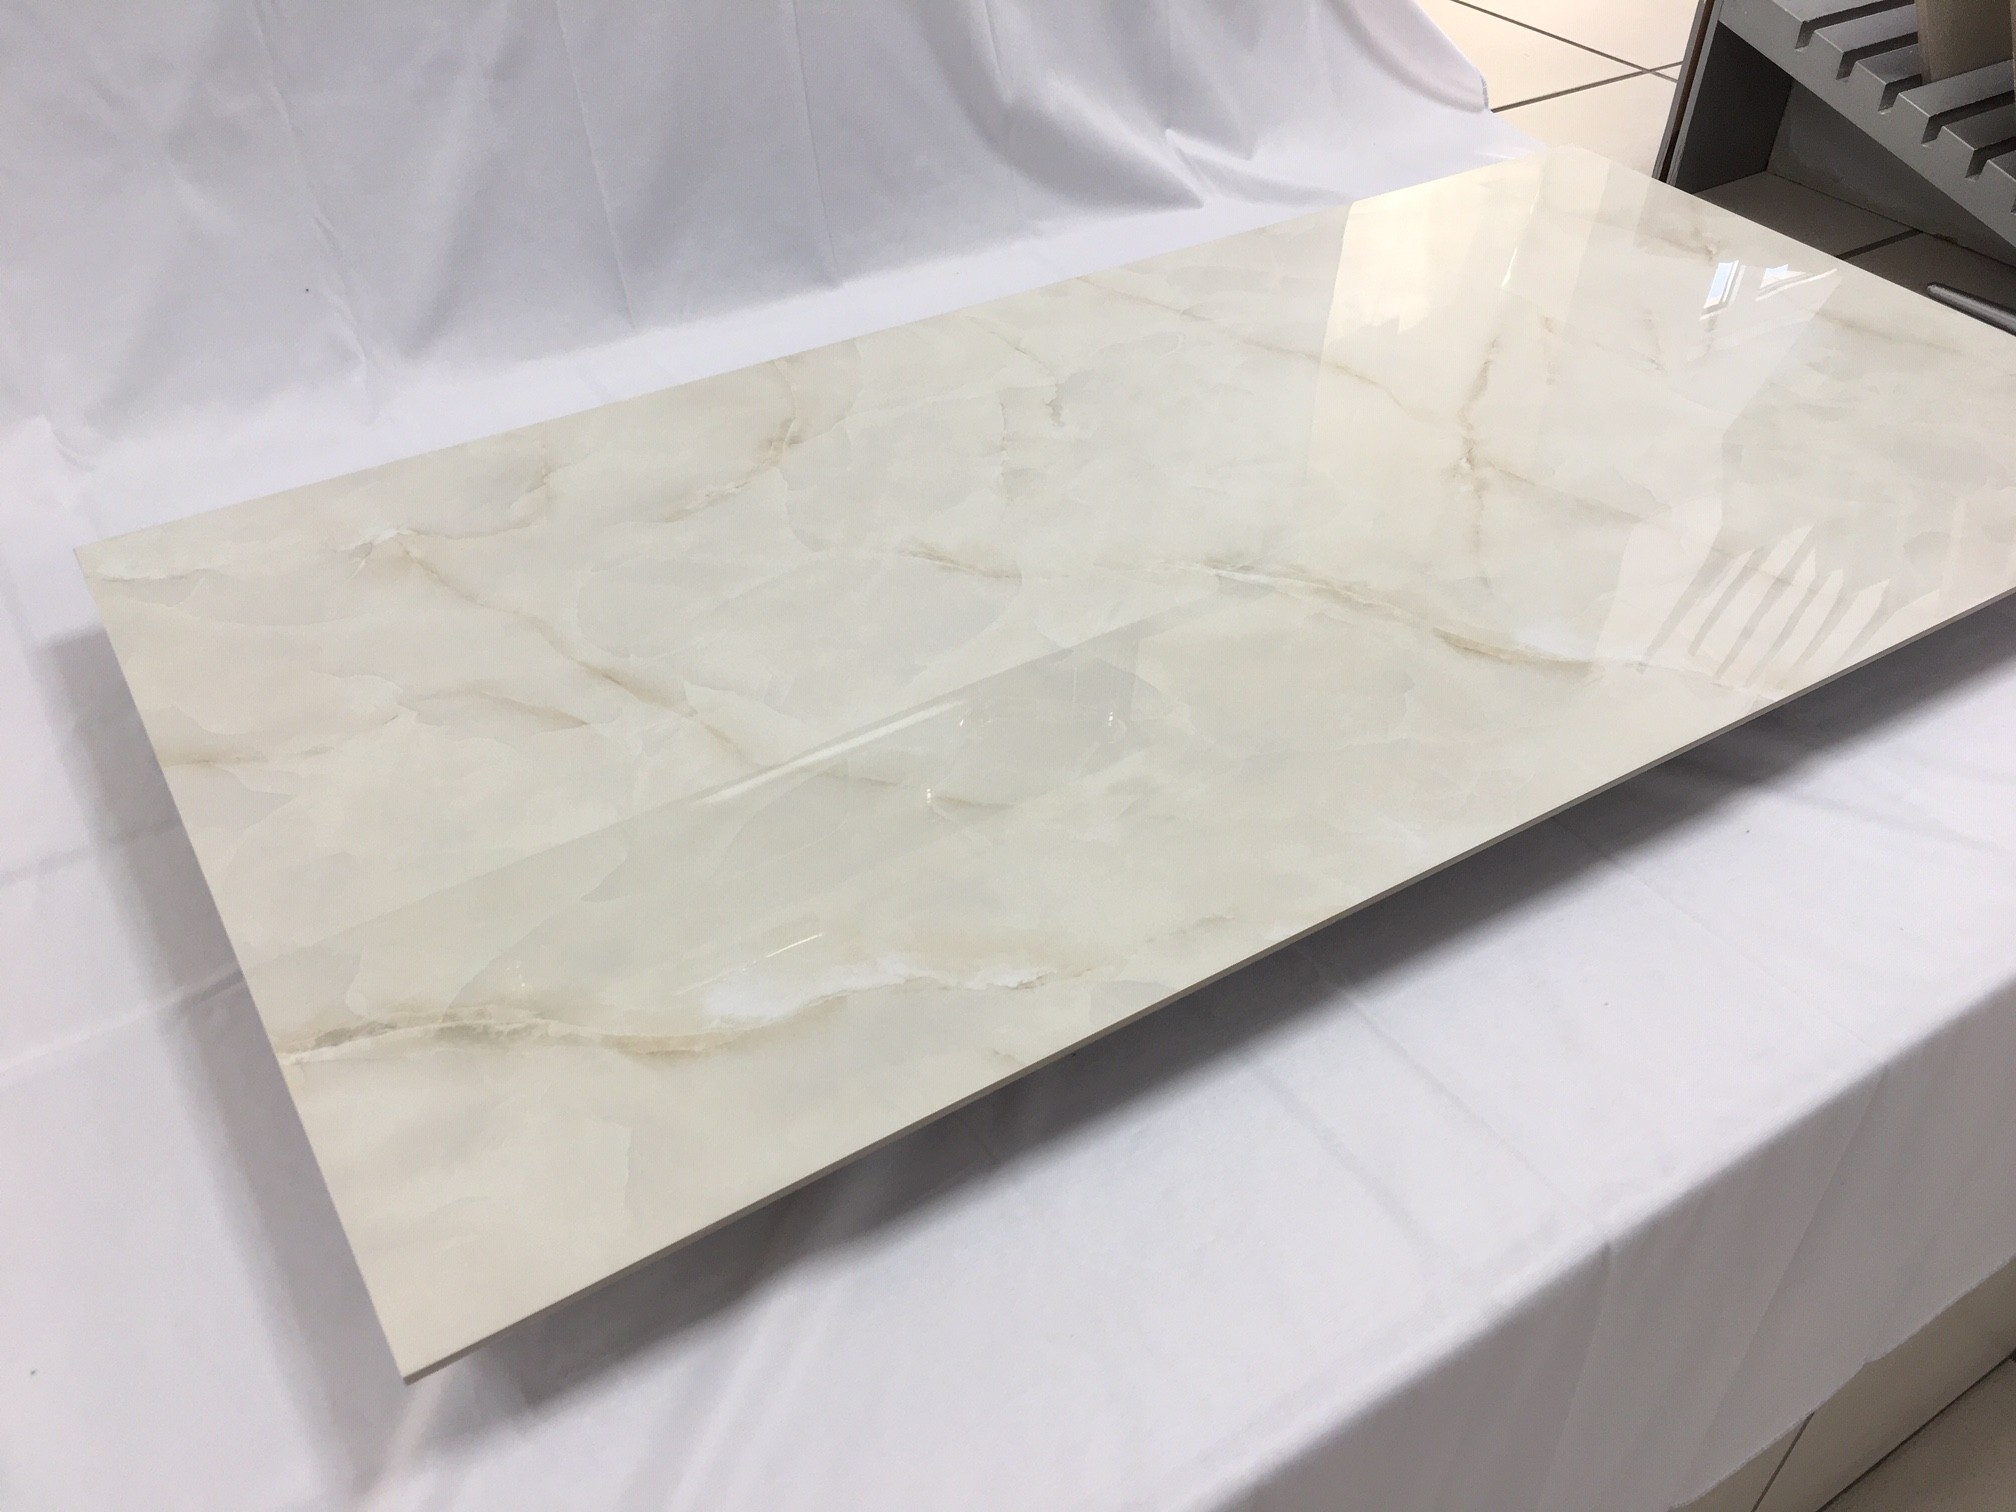 Gres porcelain tile 5,5 mm tickness Onice beige marble polished 60x120 cm